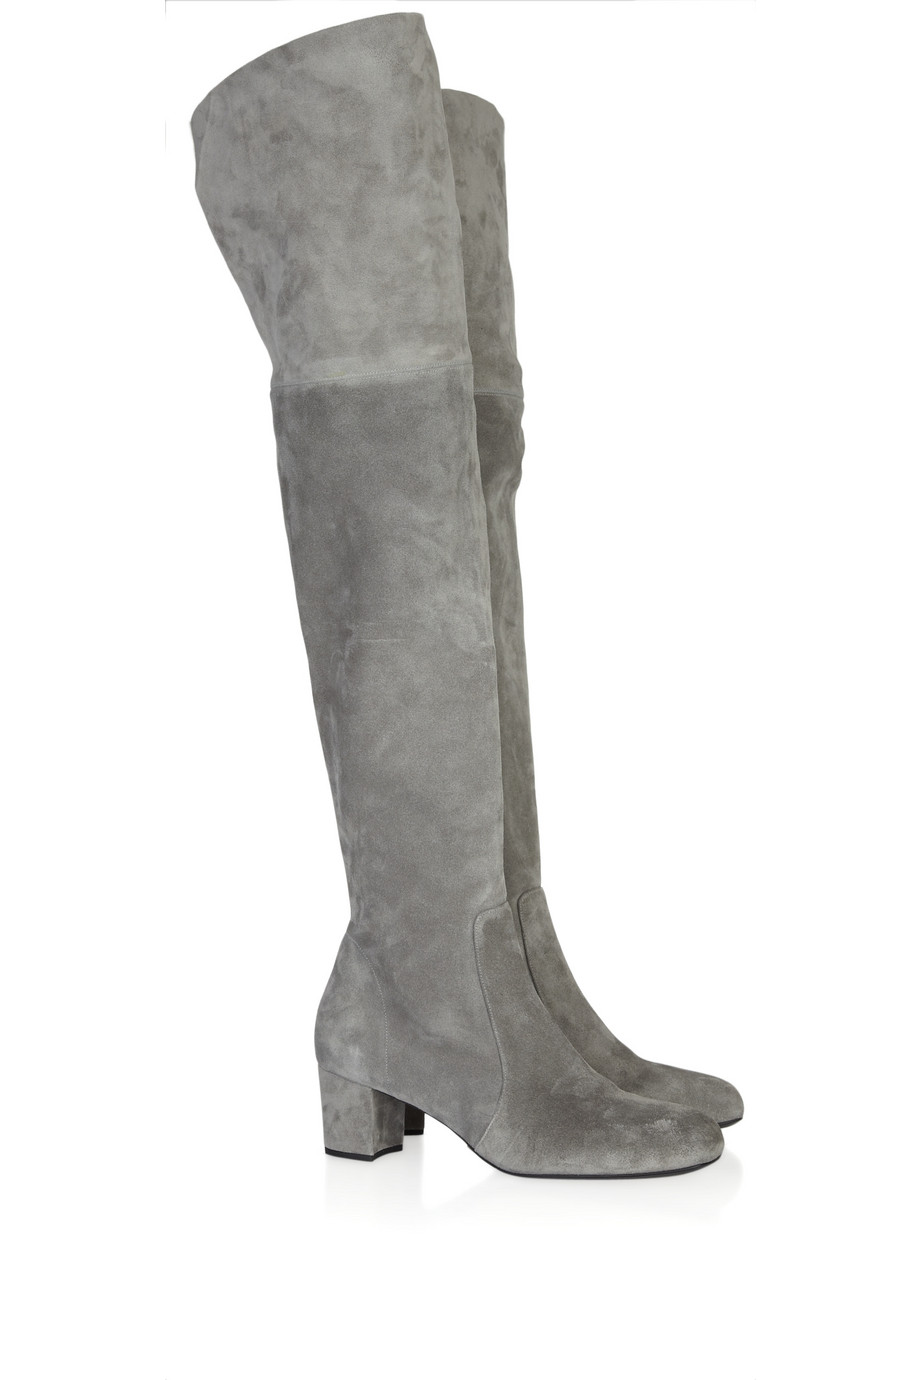 Michael Kors Suede Over The Knee Boots In Gray Lyst